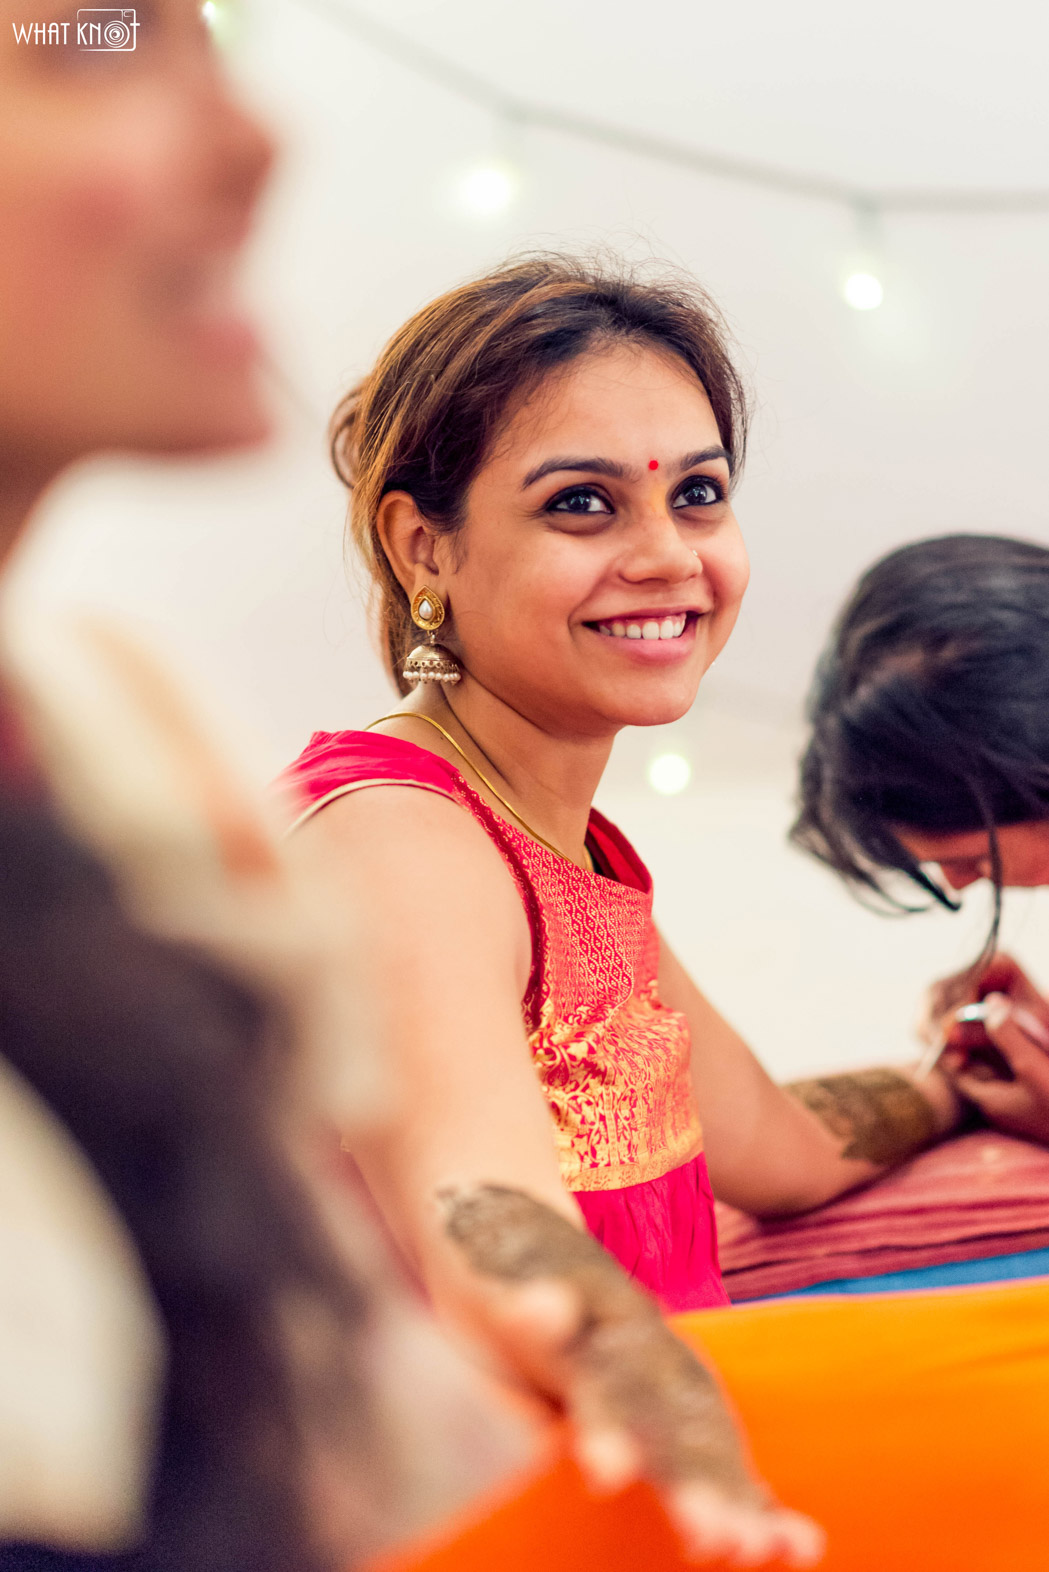 Candid-Wedding-Photography-WhatKnot-Marathi-45